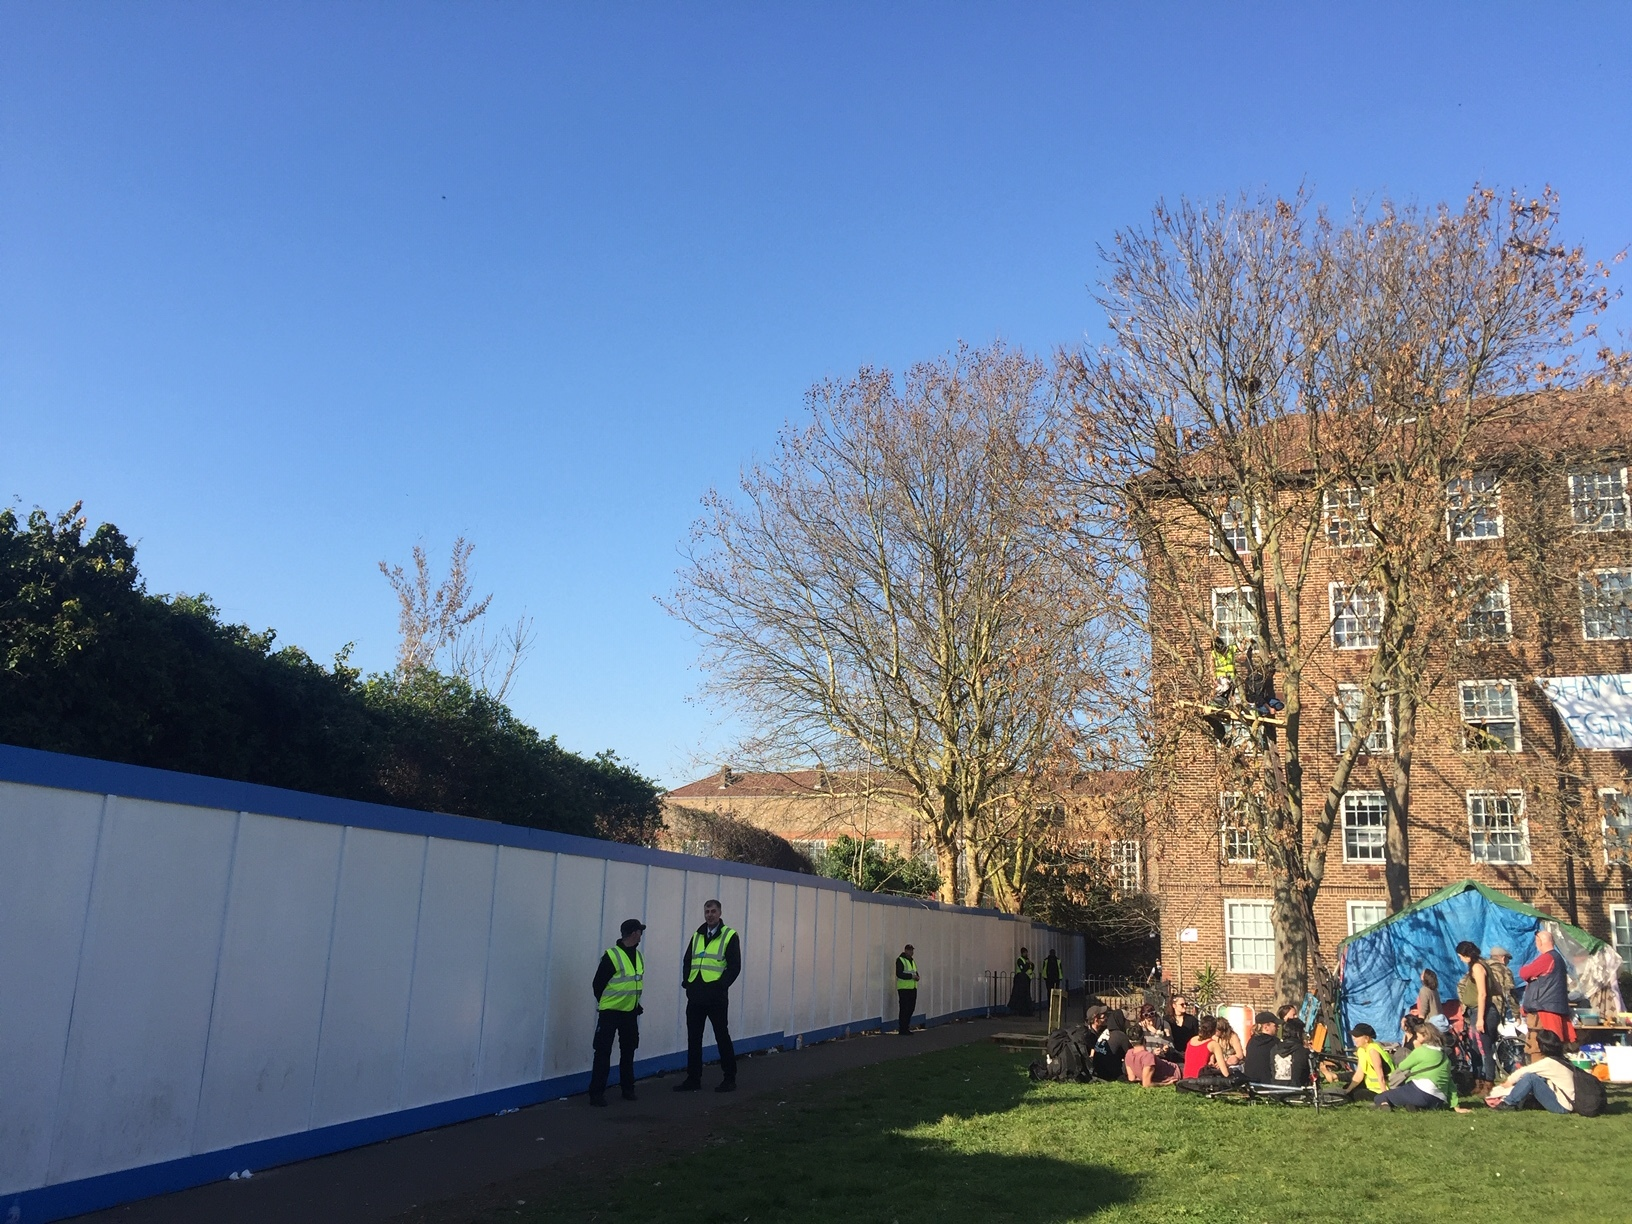 A protest camp by the Tidemill garden has been given an eviction notice.